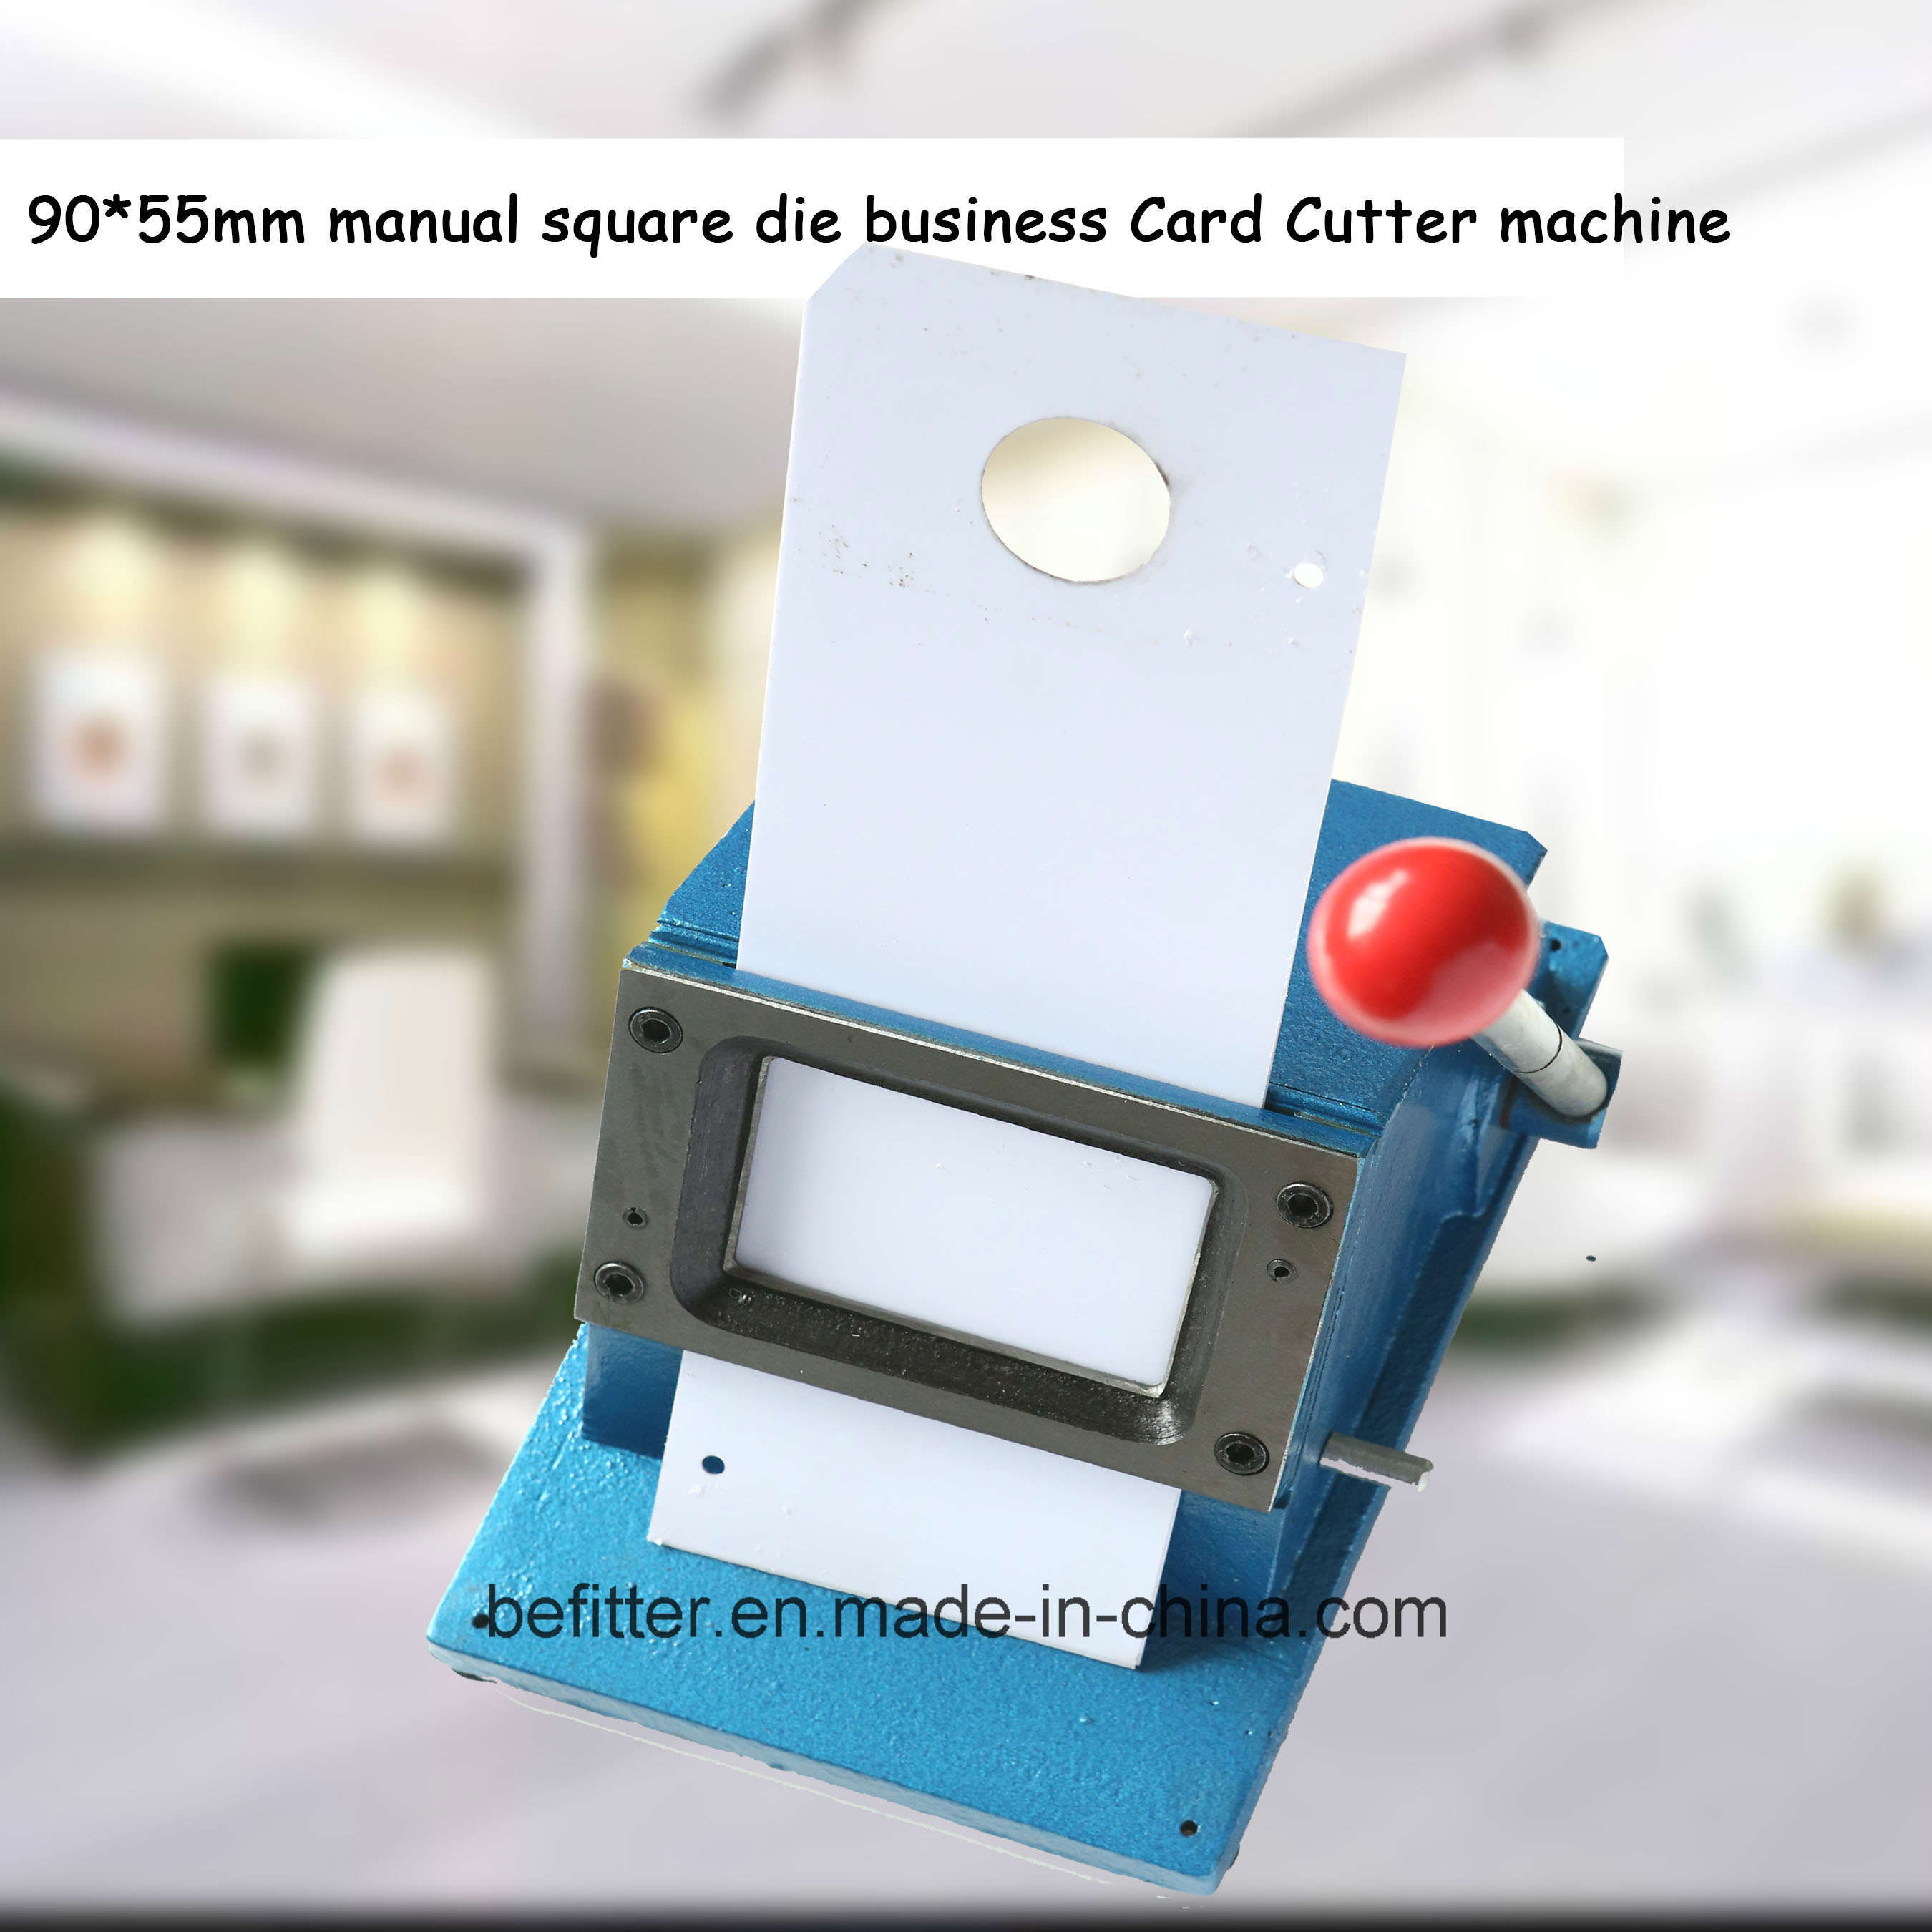 China D-010 90*55mm manual square die business Card Cutter machine ...